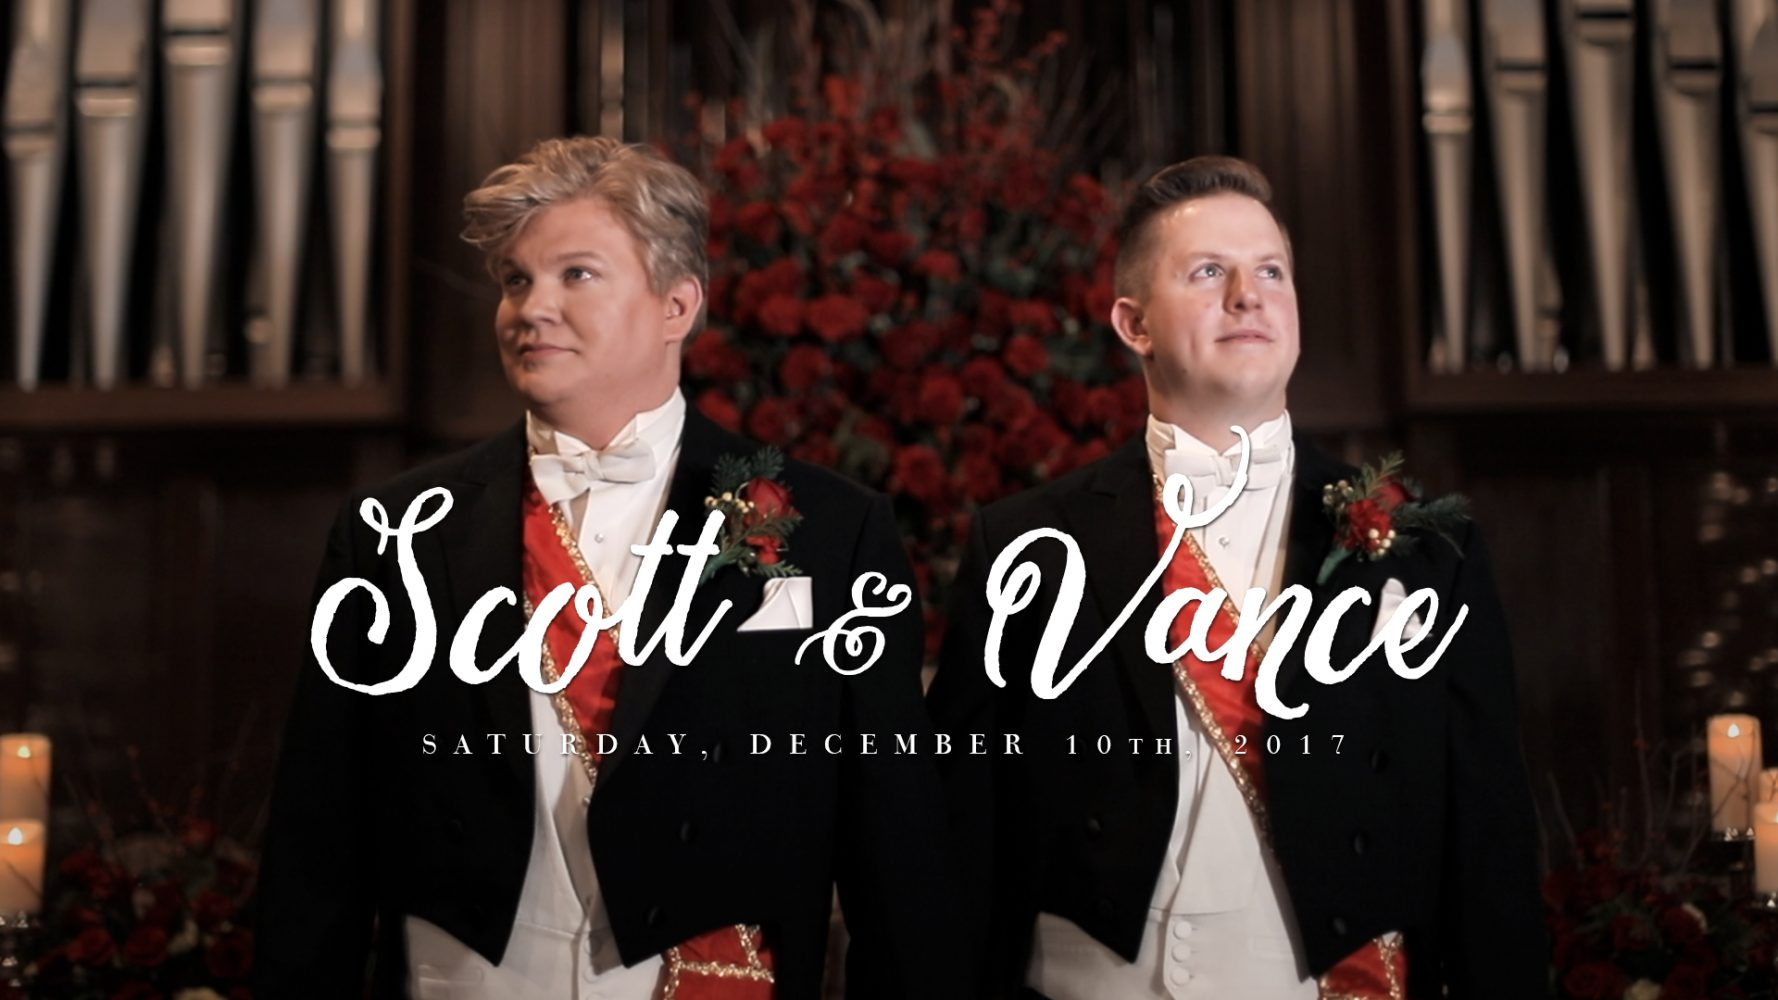 Scott + Vance | Nashville, Tennessee | War Memorial Auditorium